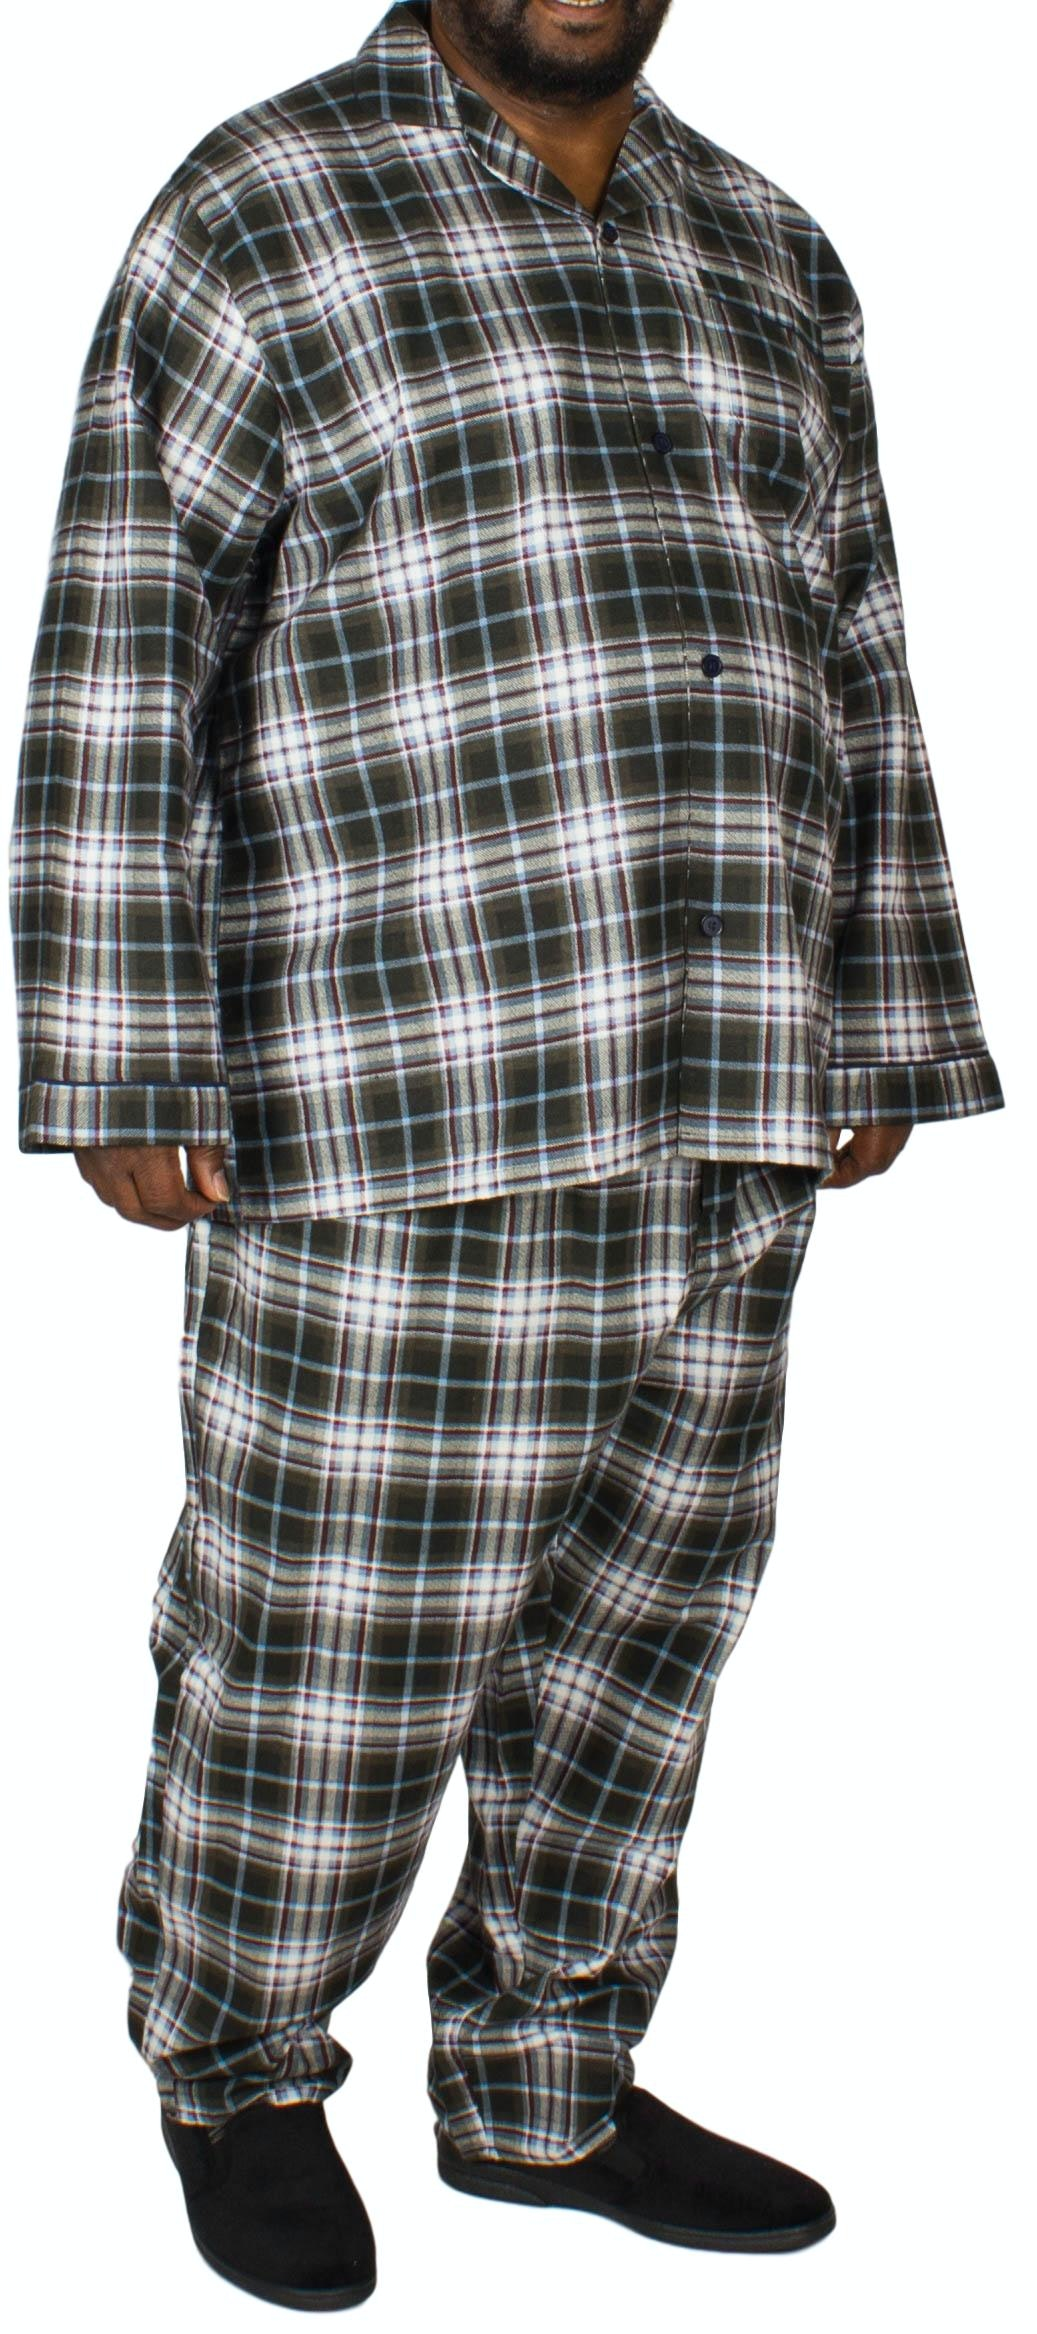 King's Club Red/Blue Plaid Pyjamas Set